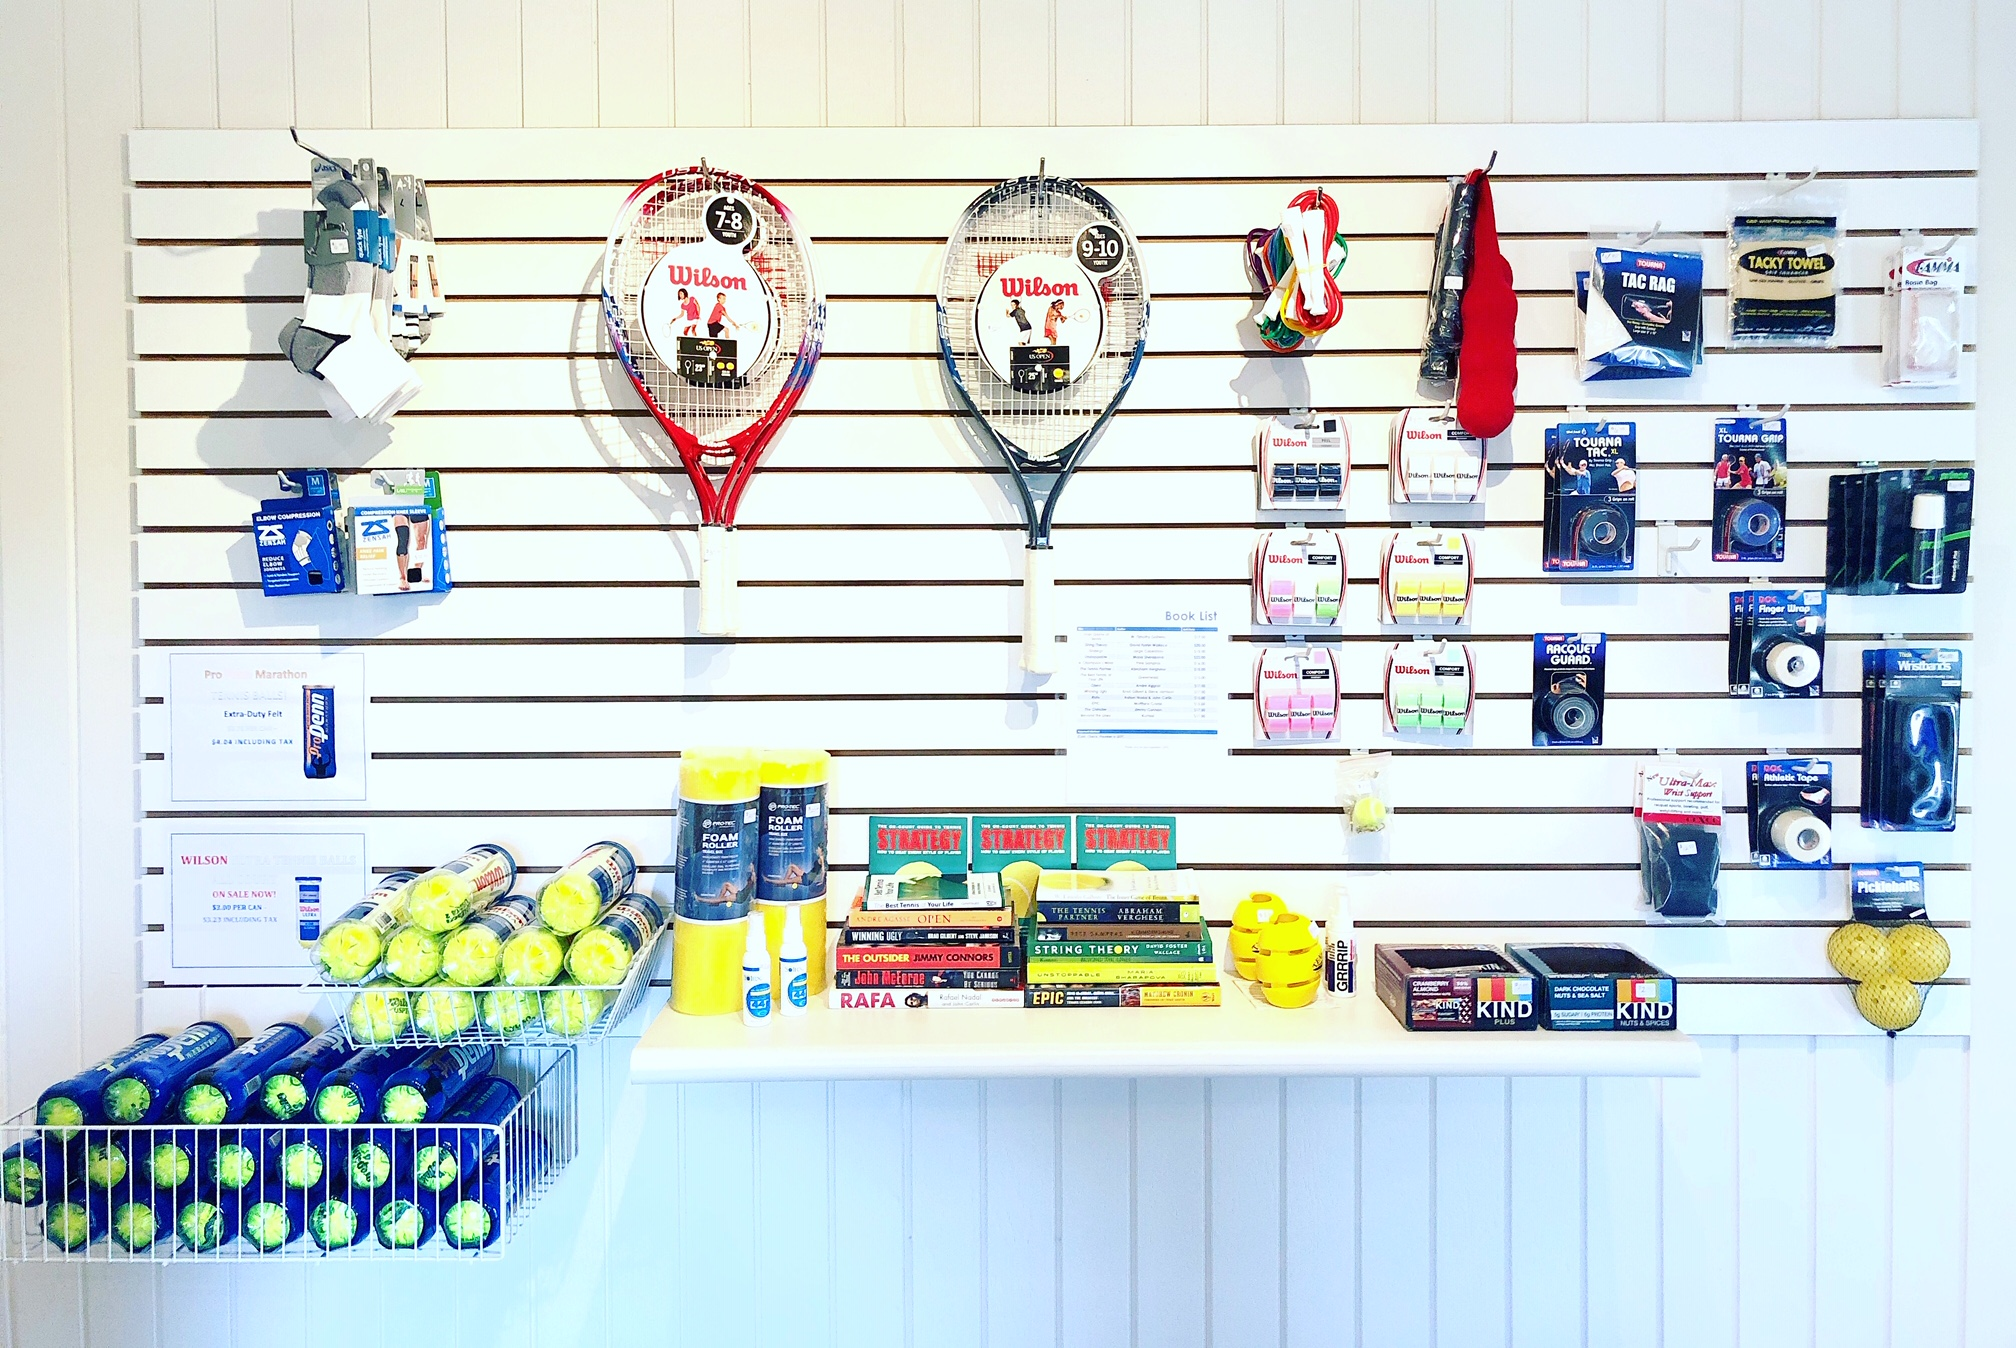 Pro Shop - The Pro Shop is open to the public, located on the mid level, there are tennis balls, club logo wear, grips, accessories, drinks, and snacks for purchase.Pro Shop hours:Monday – Friday: 8:30am-1:00pm & 2:30pm- 5:00pmSaturday: 8:00am – 11:00amSunday: ClosedPro Shop phone number: 760-942-9725